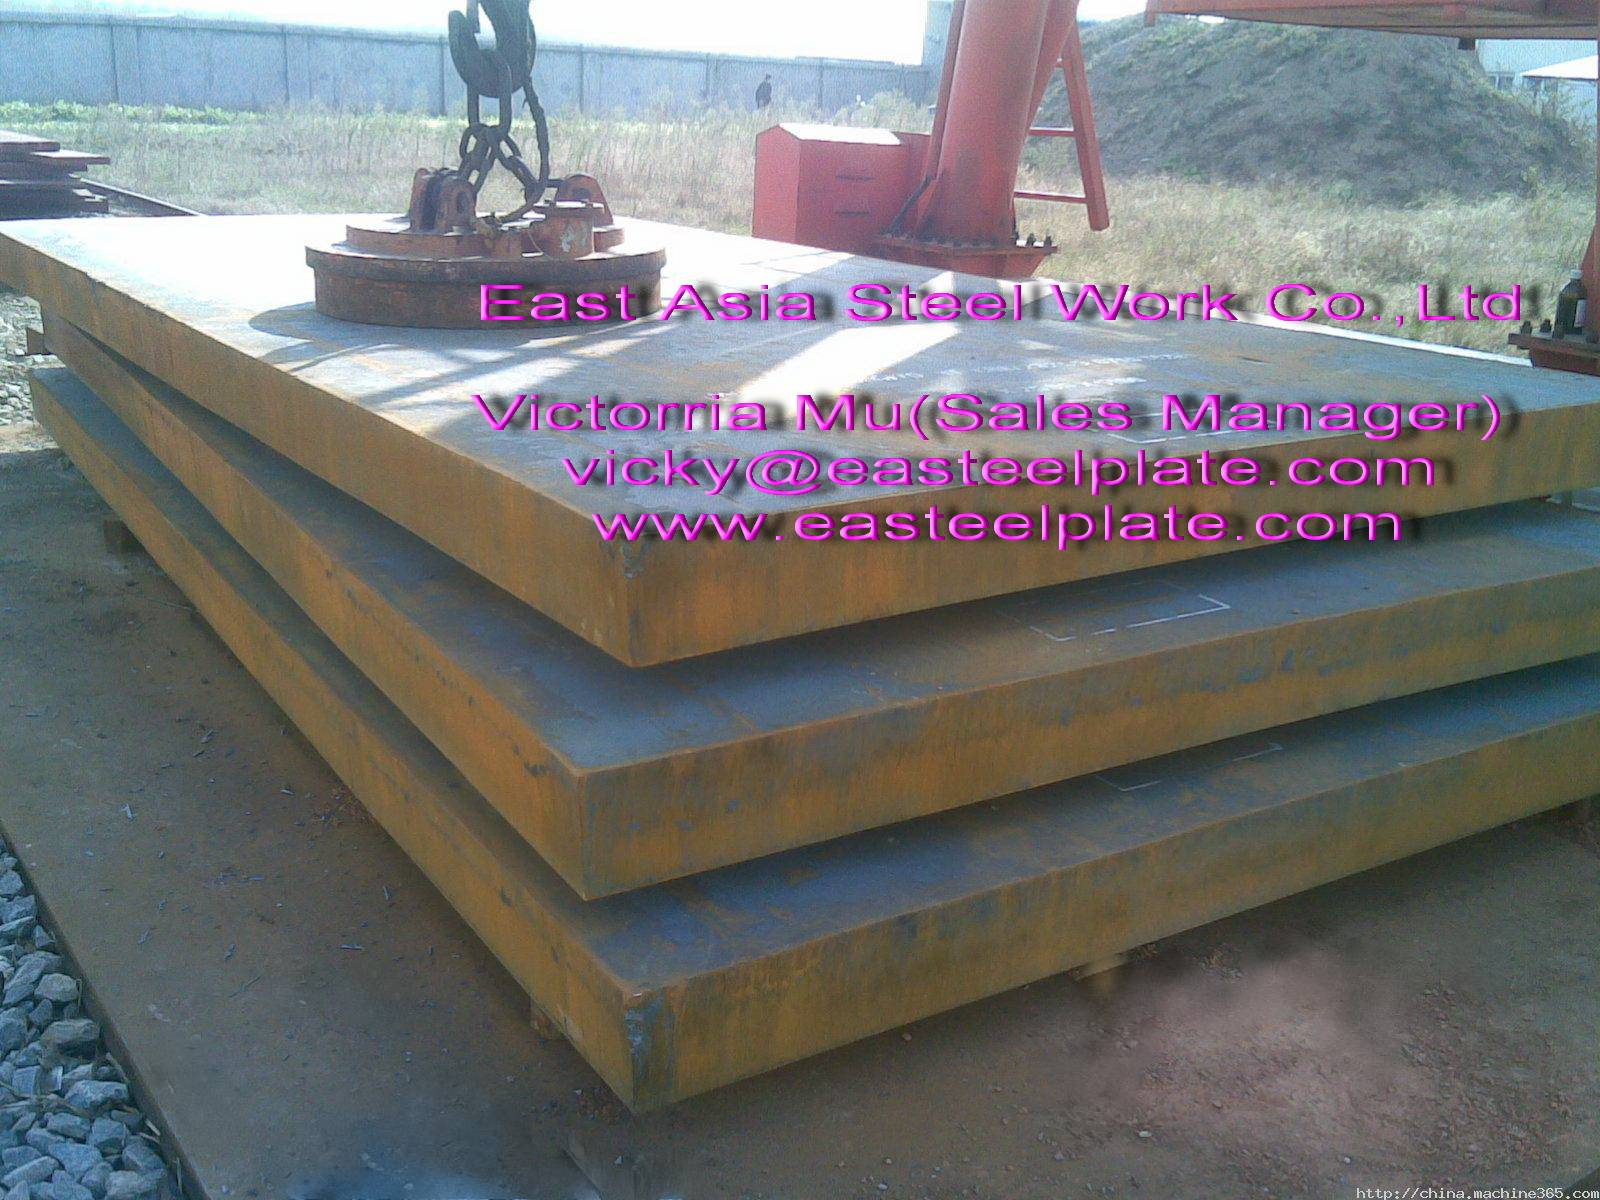 Sell: ABS/ GL/ LR/ BV/ DNV Grade A/ B/ D/ E steel plates for shipbuilding